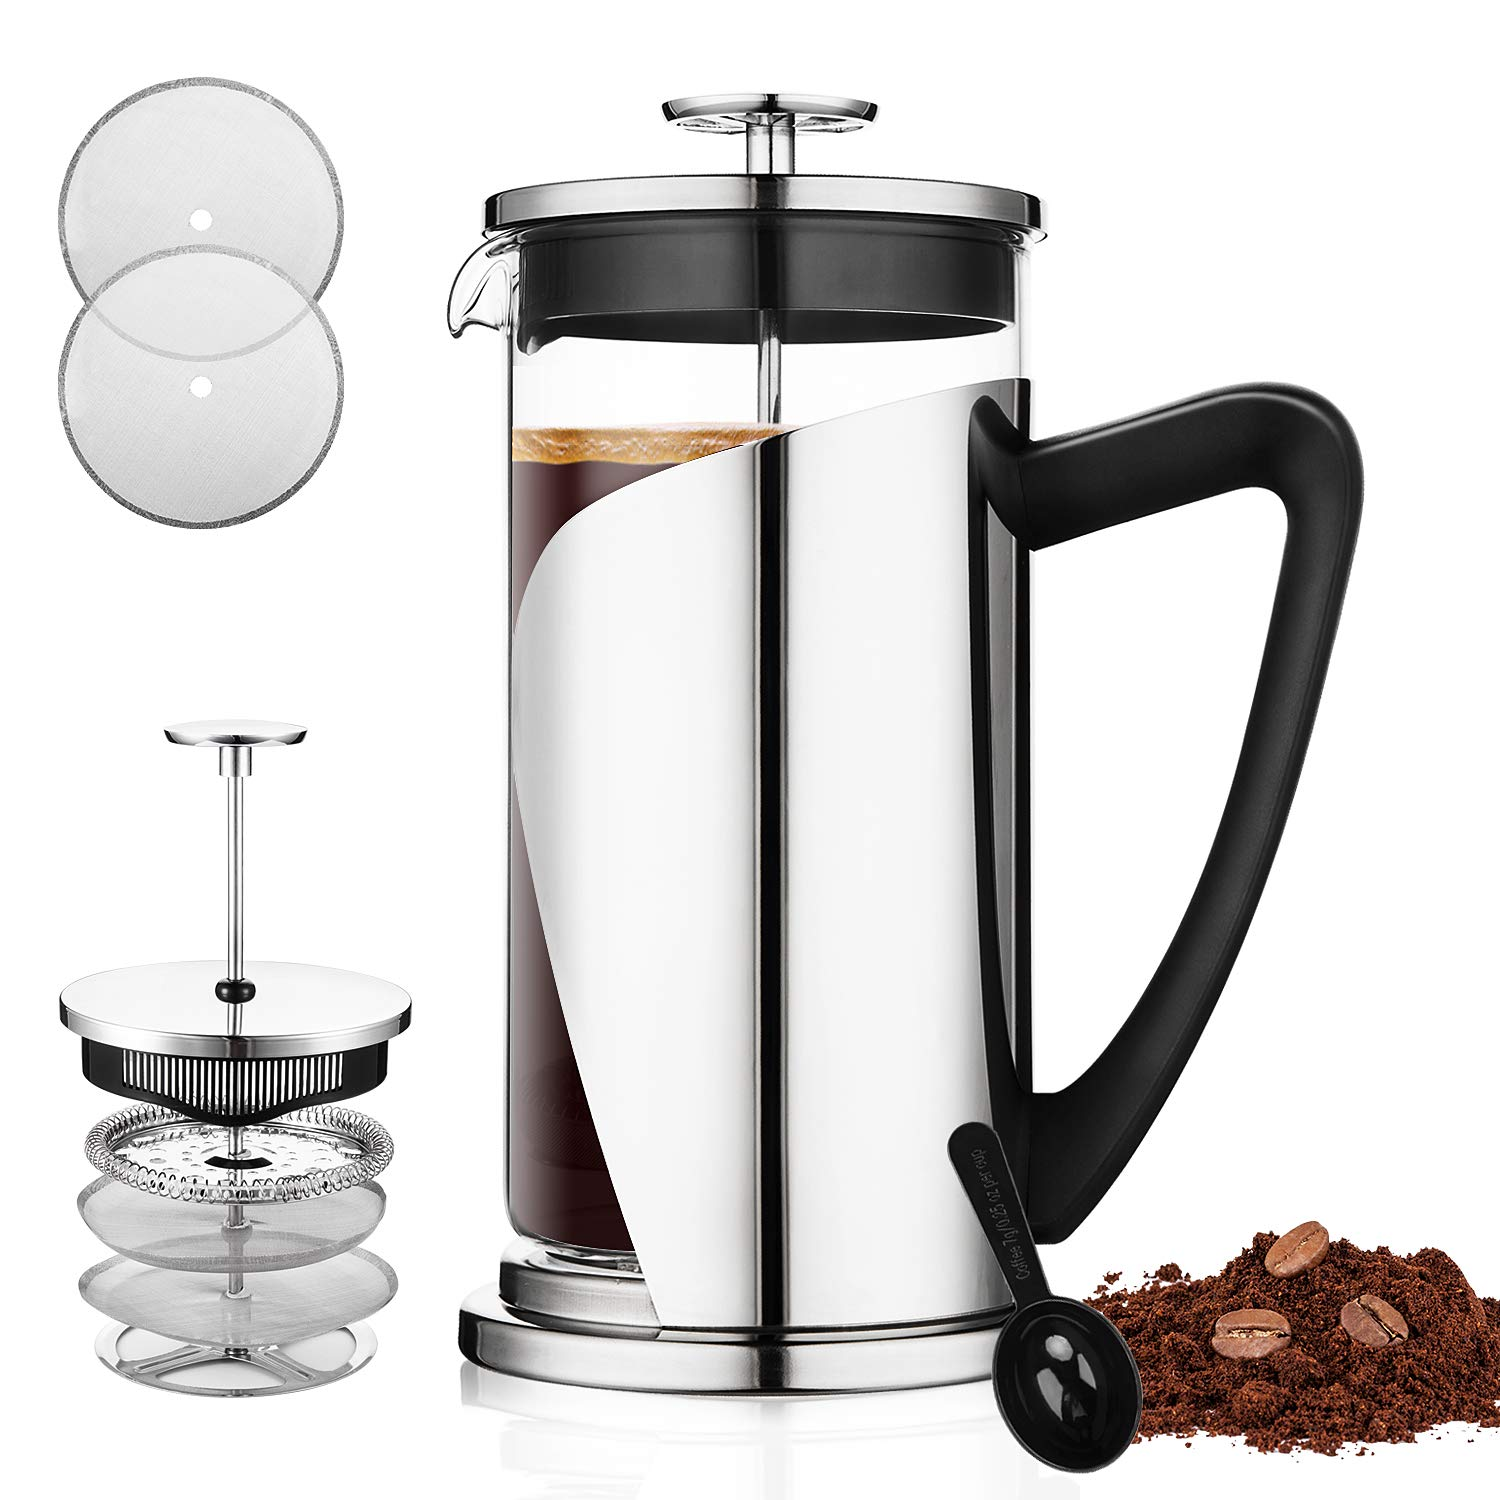 French Press Coffee Maker, Bebeke 34oz Coffee and Tea Makers with 4 Level Filtration System, FDA Approved, BPA Free, Heat Resistant Borosilicate Glass Coffeepot, 304 Grade Stainless Steel French Press